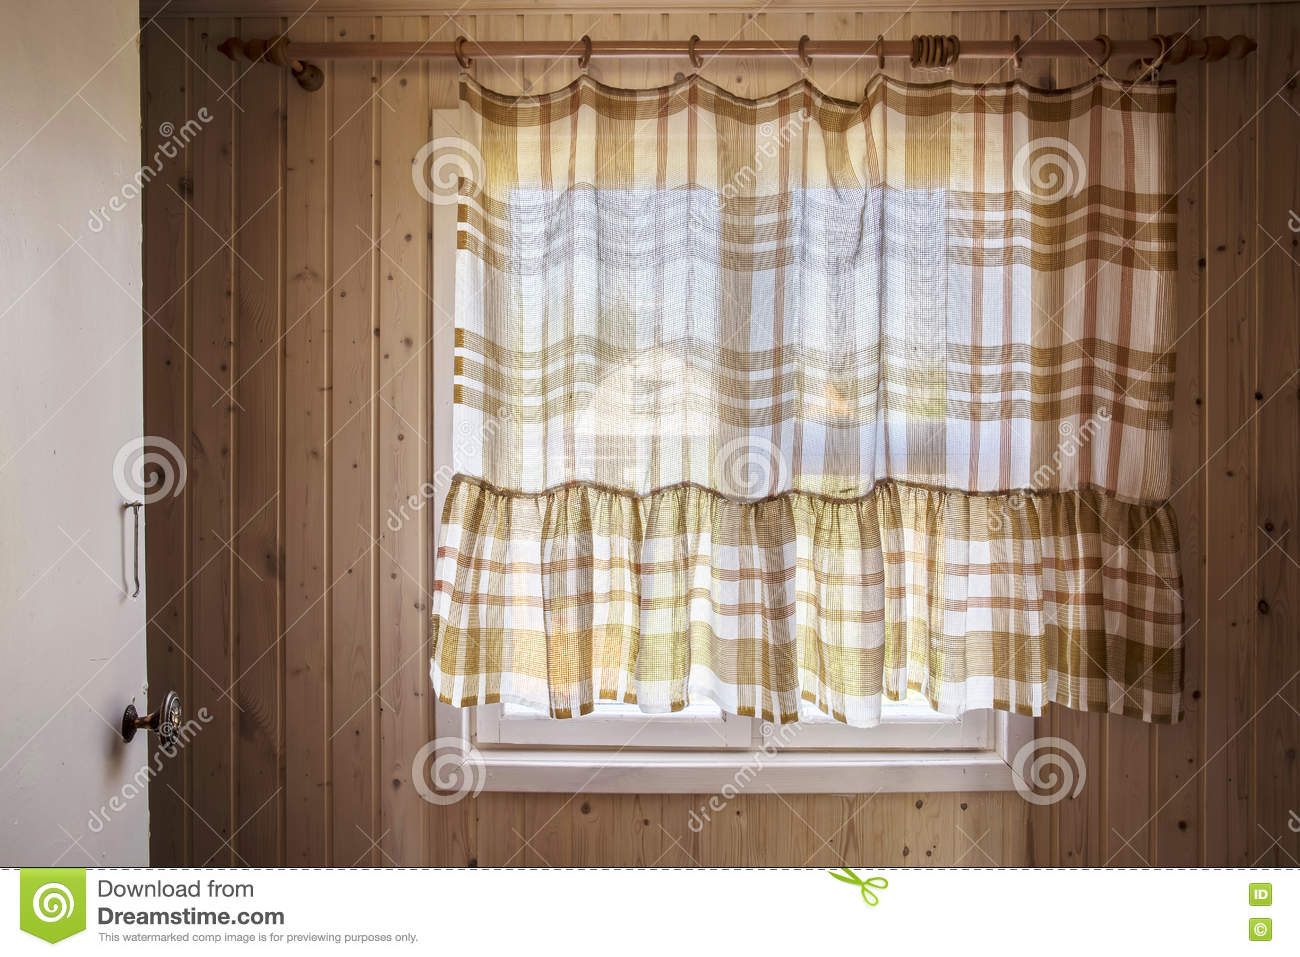 Inside house windows with curtains - Curtains House Inside Nature Rustic Sky Window